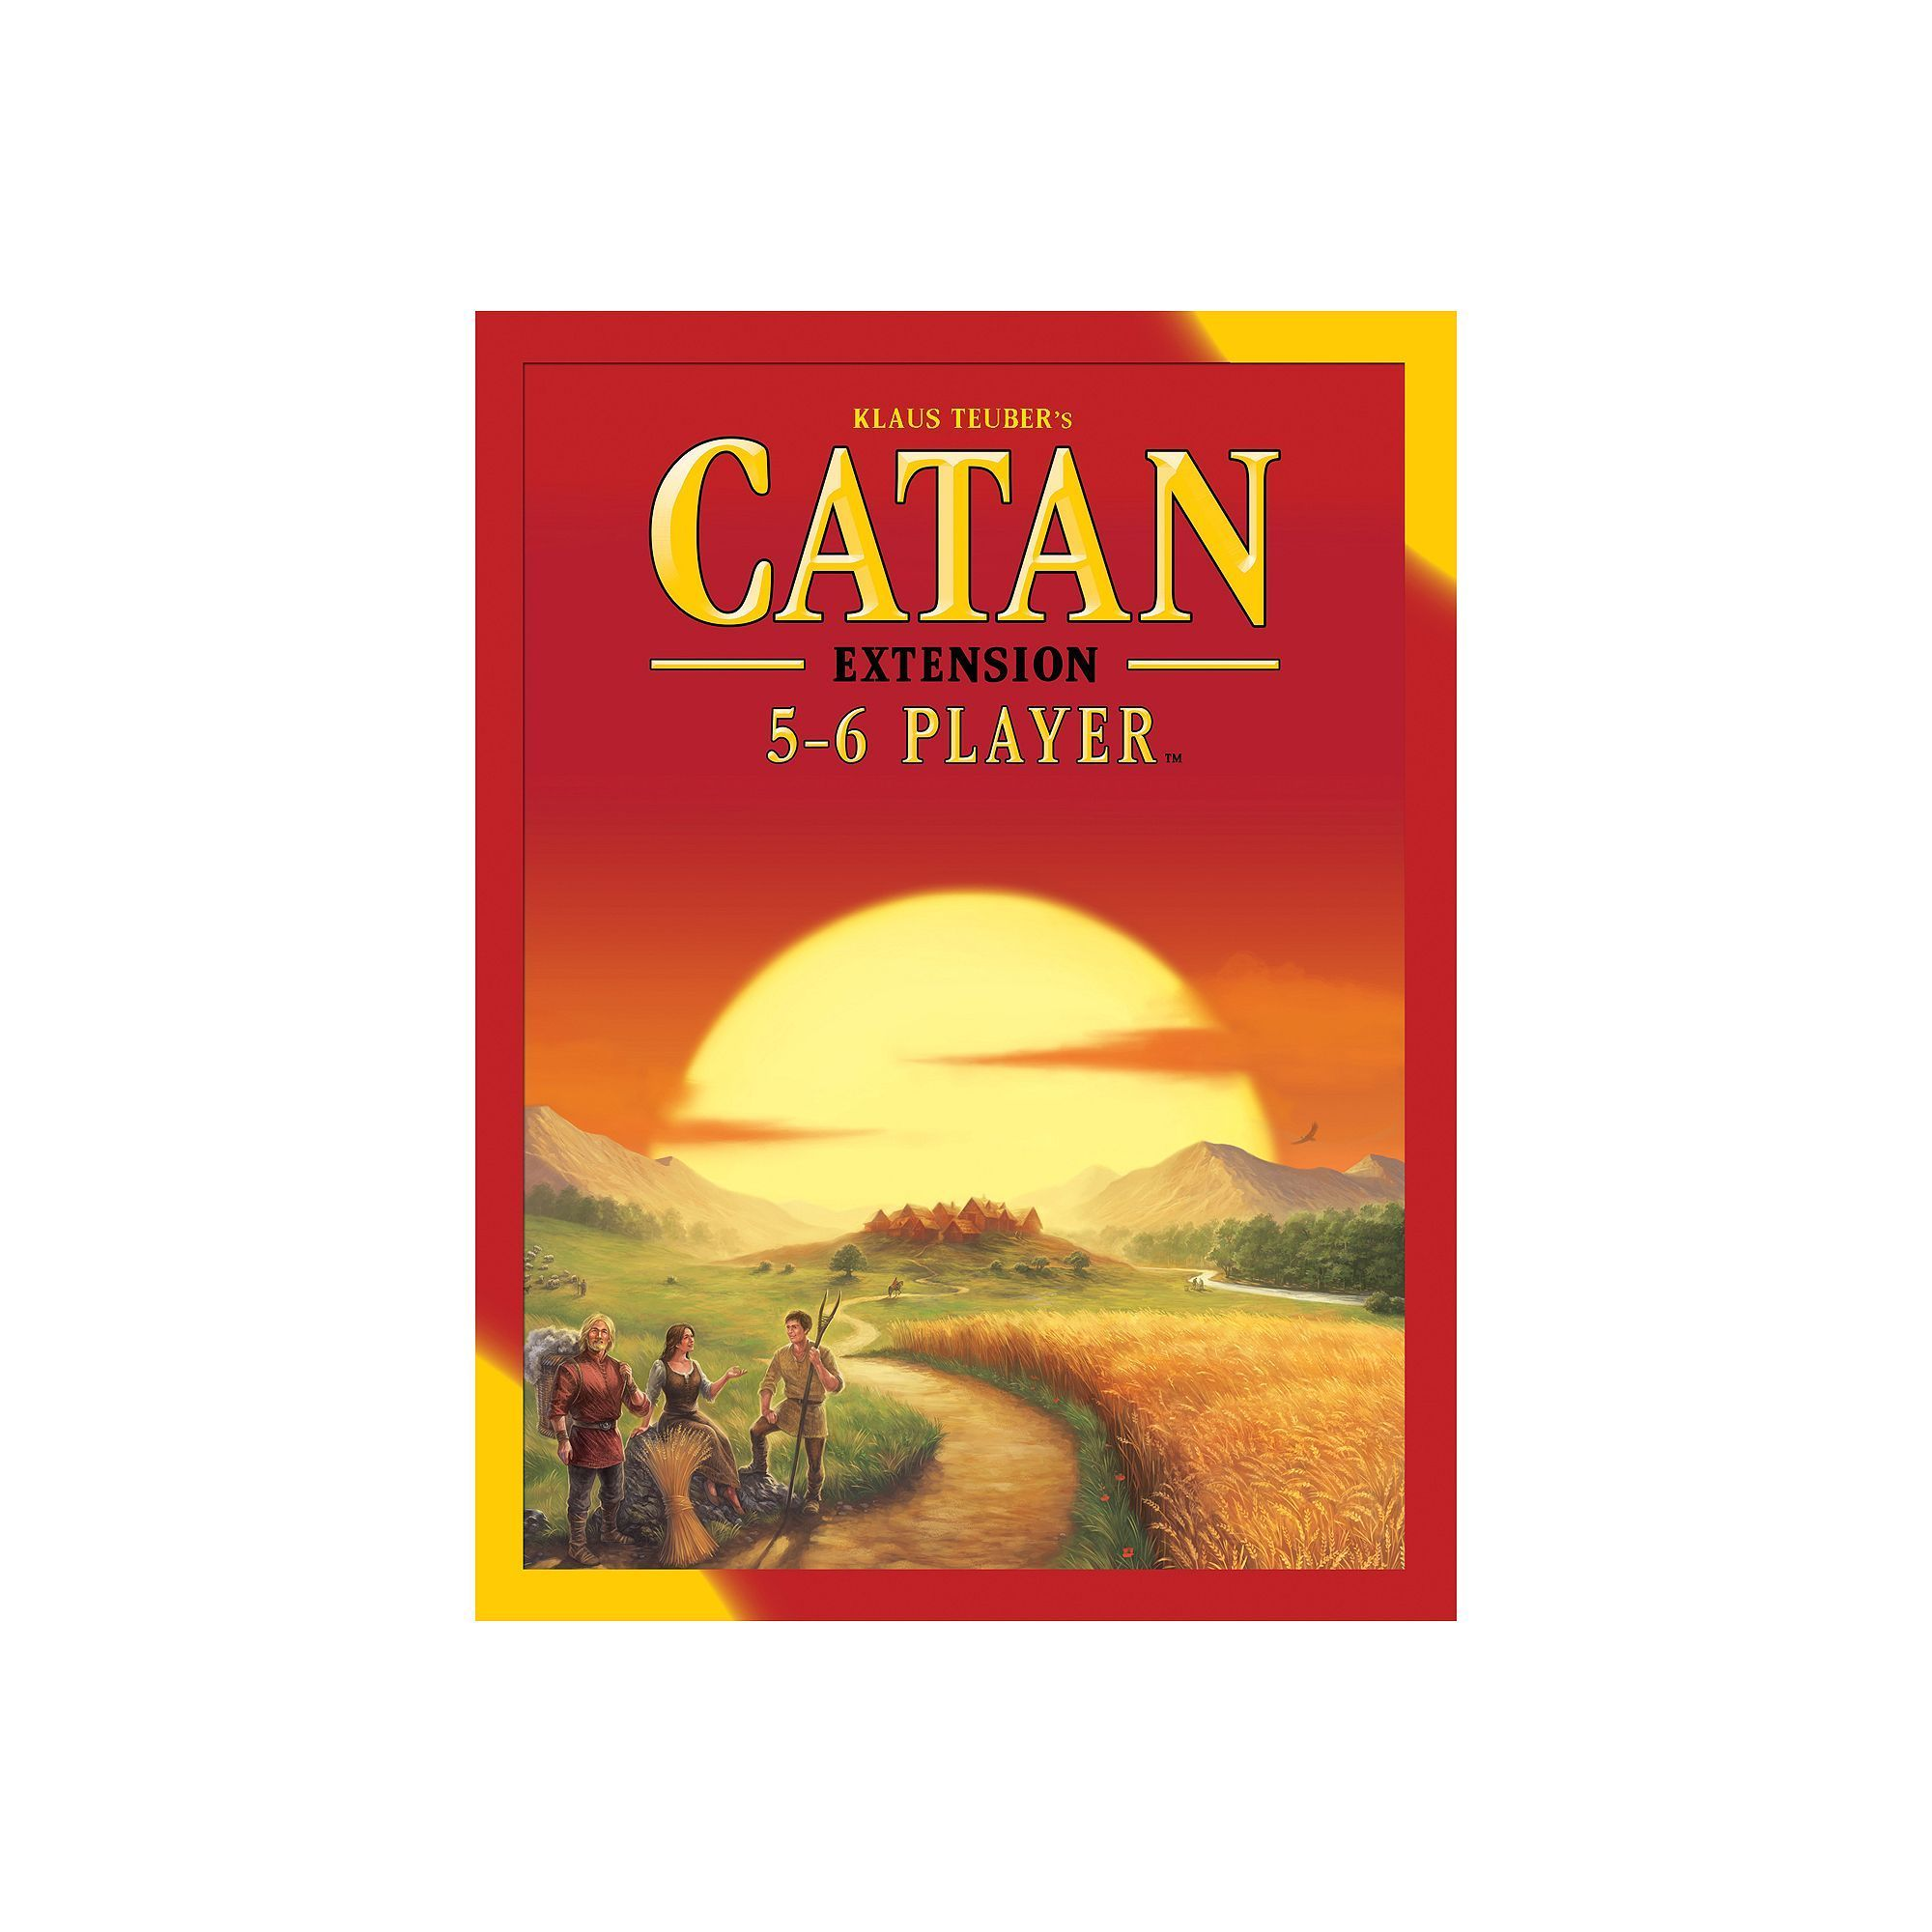 Catan 56 Player Game Extension by Mayfair Games Catan